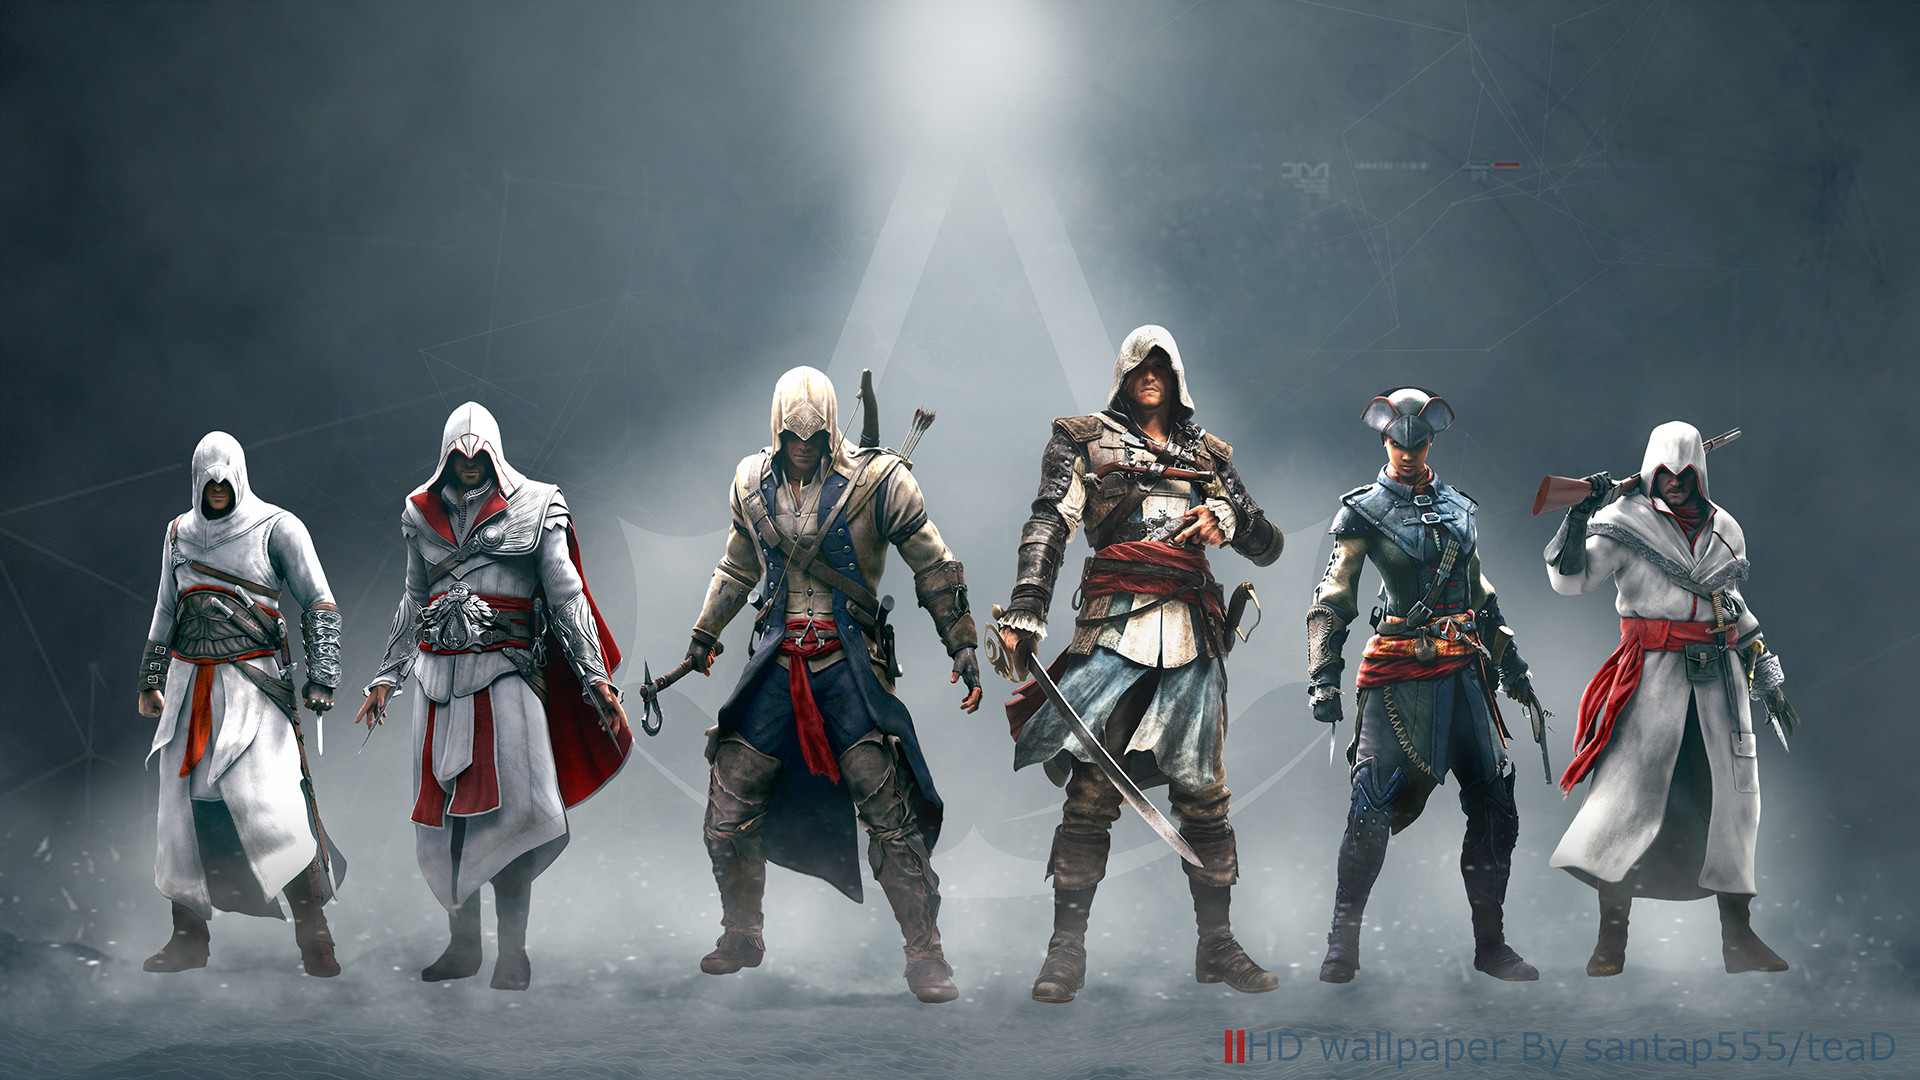 1920x1080 ... Assassin's Creed wallpaper by teaD by santap555